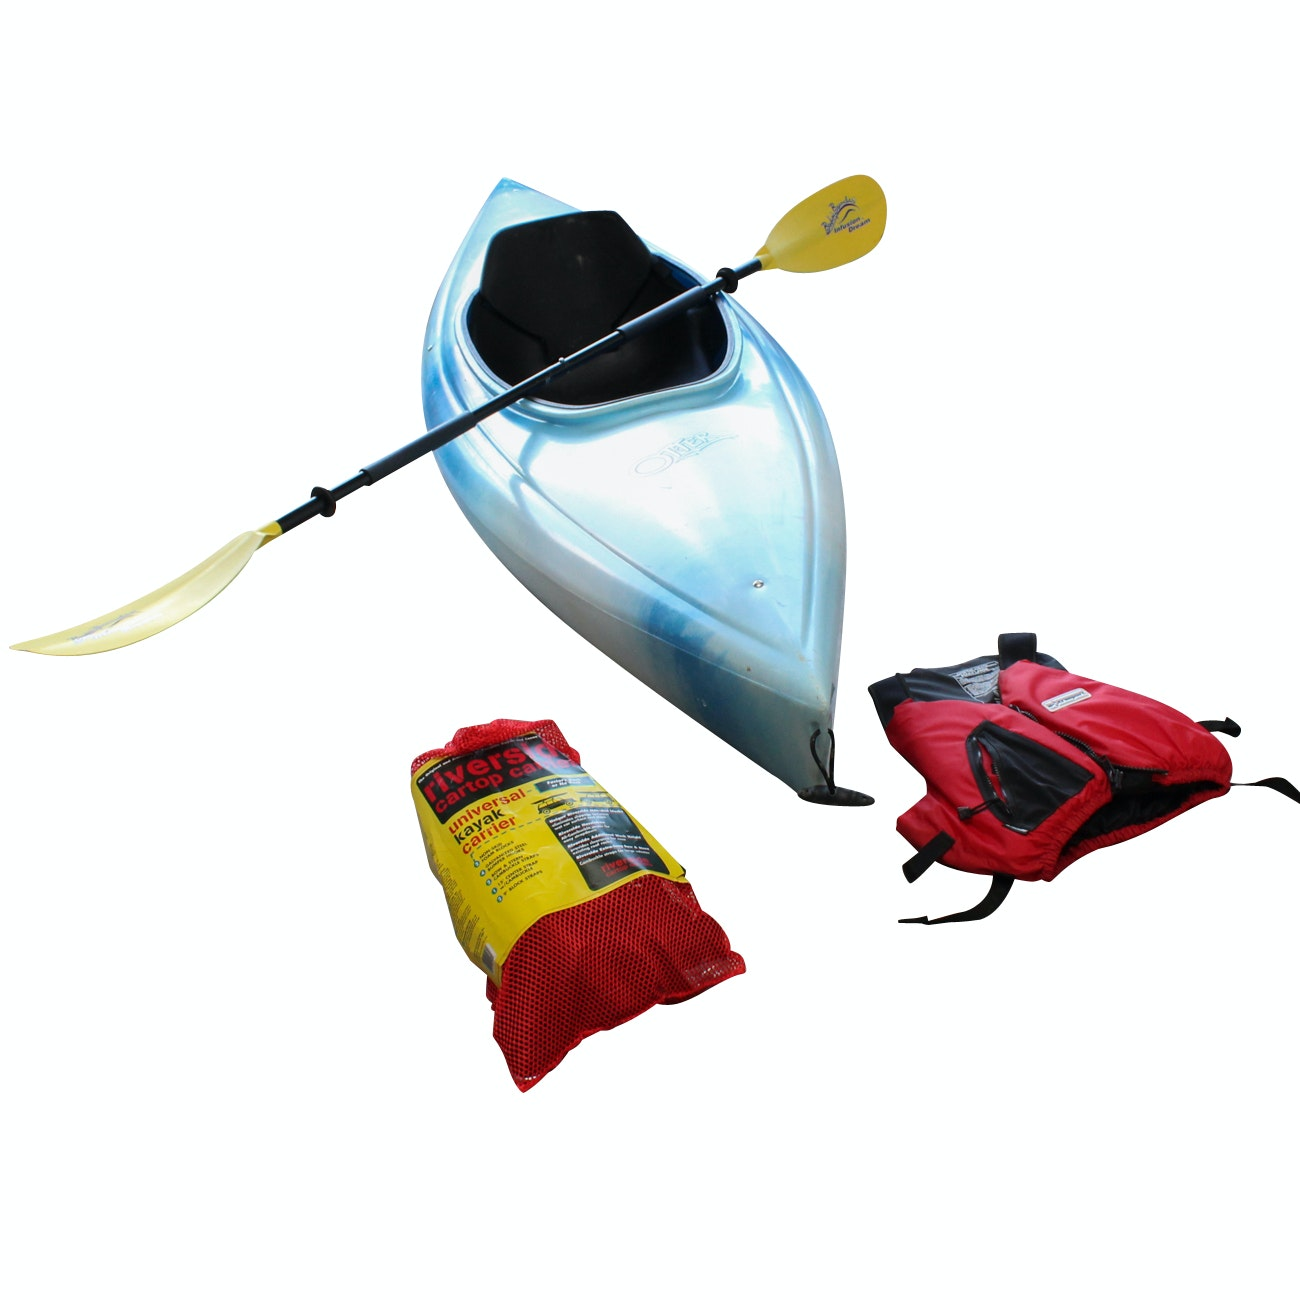 Old Town Kayak and Accessories